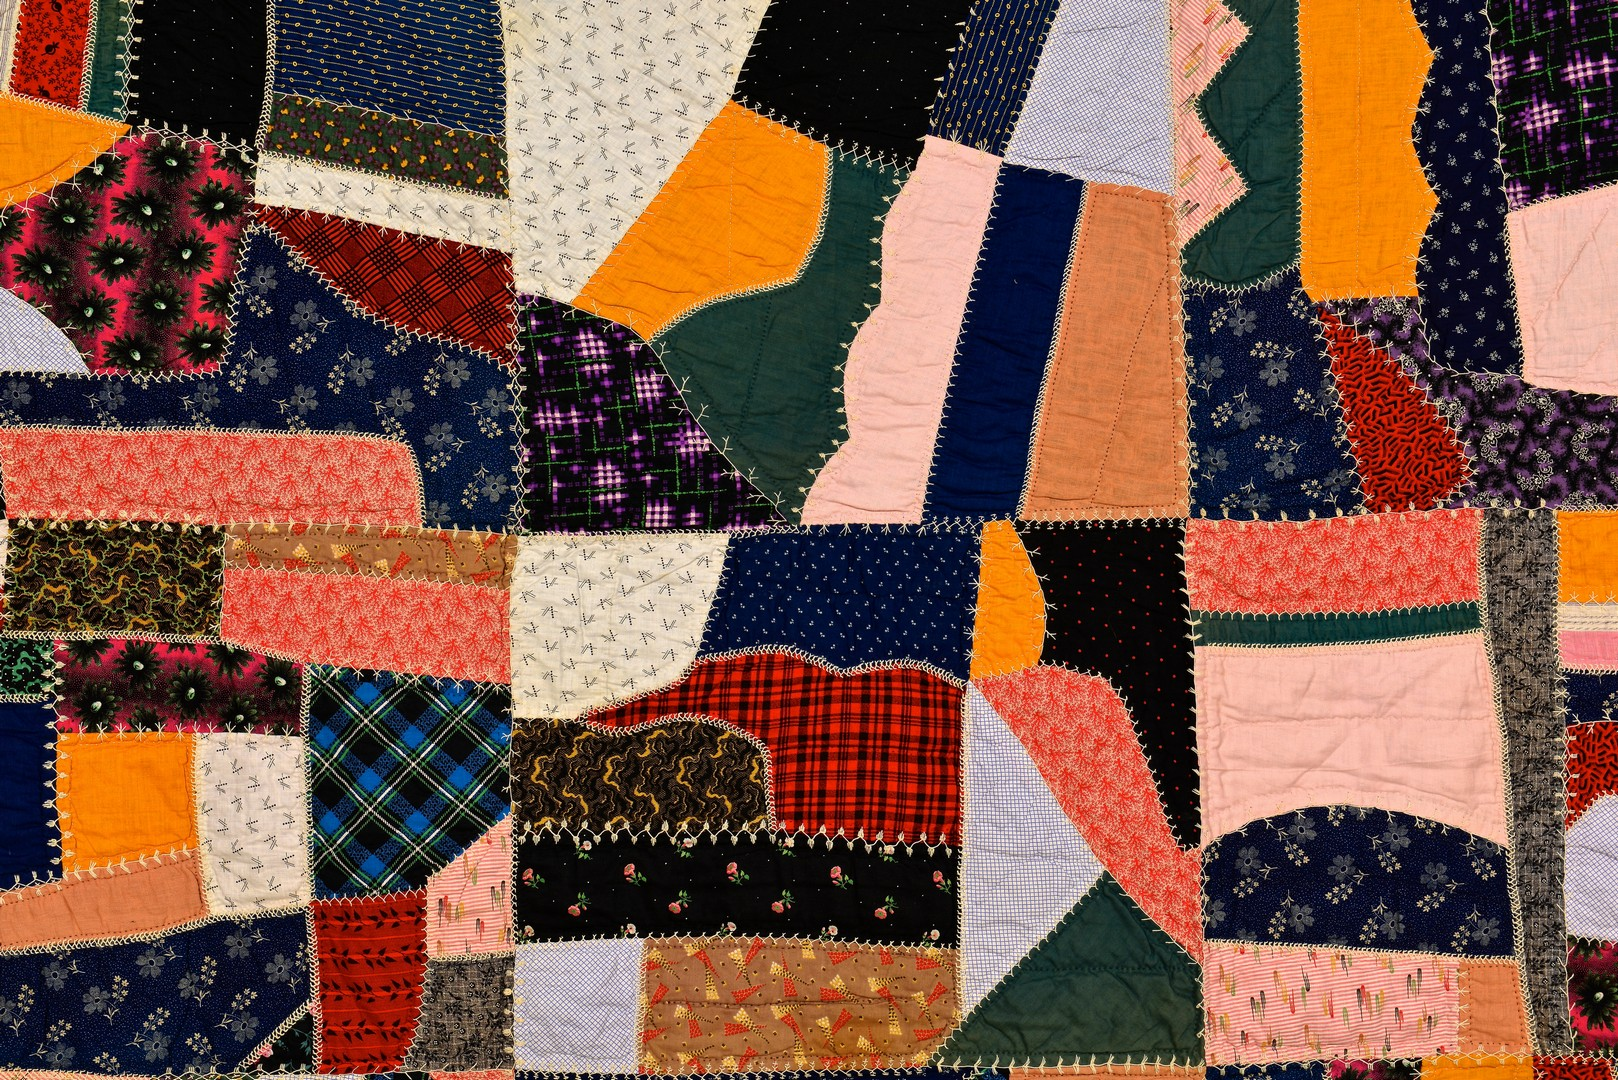 Lot 881: 3 East TN Quilts, incl. Crazy, Penny and Crochet